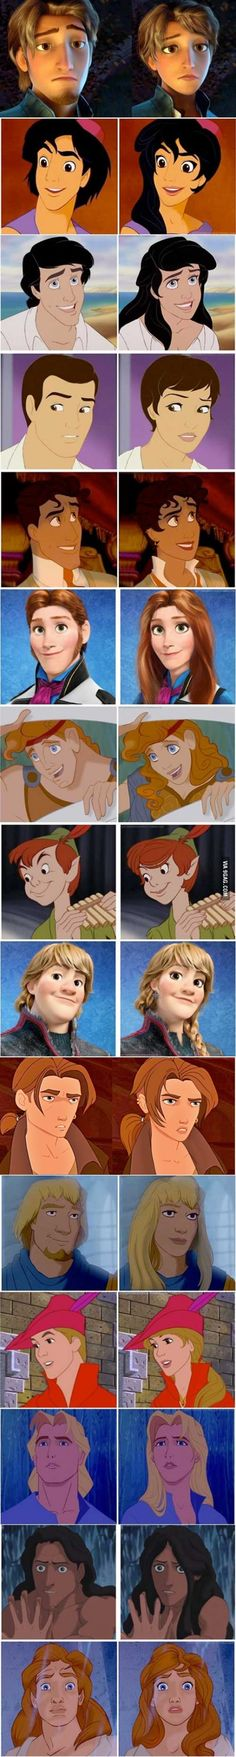 Amazing Disney Gender-Bending Transformations! - I know I've pinned something like this before, but some are new!